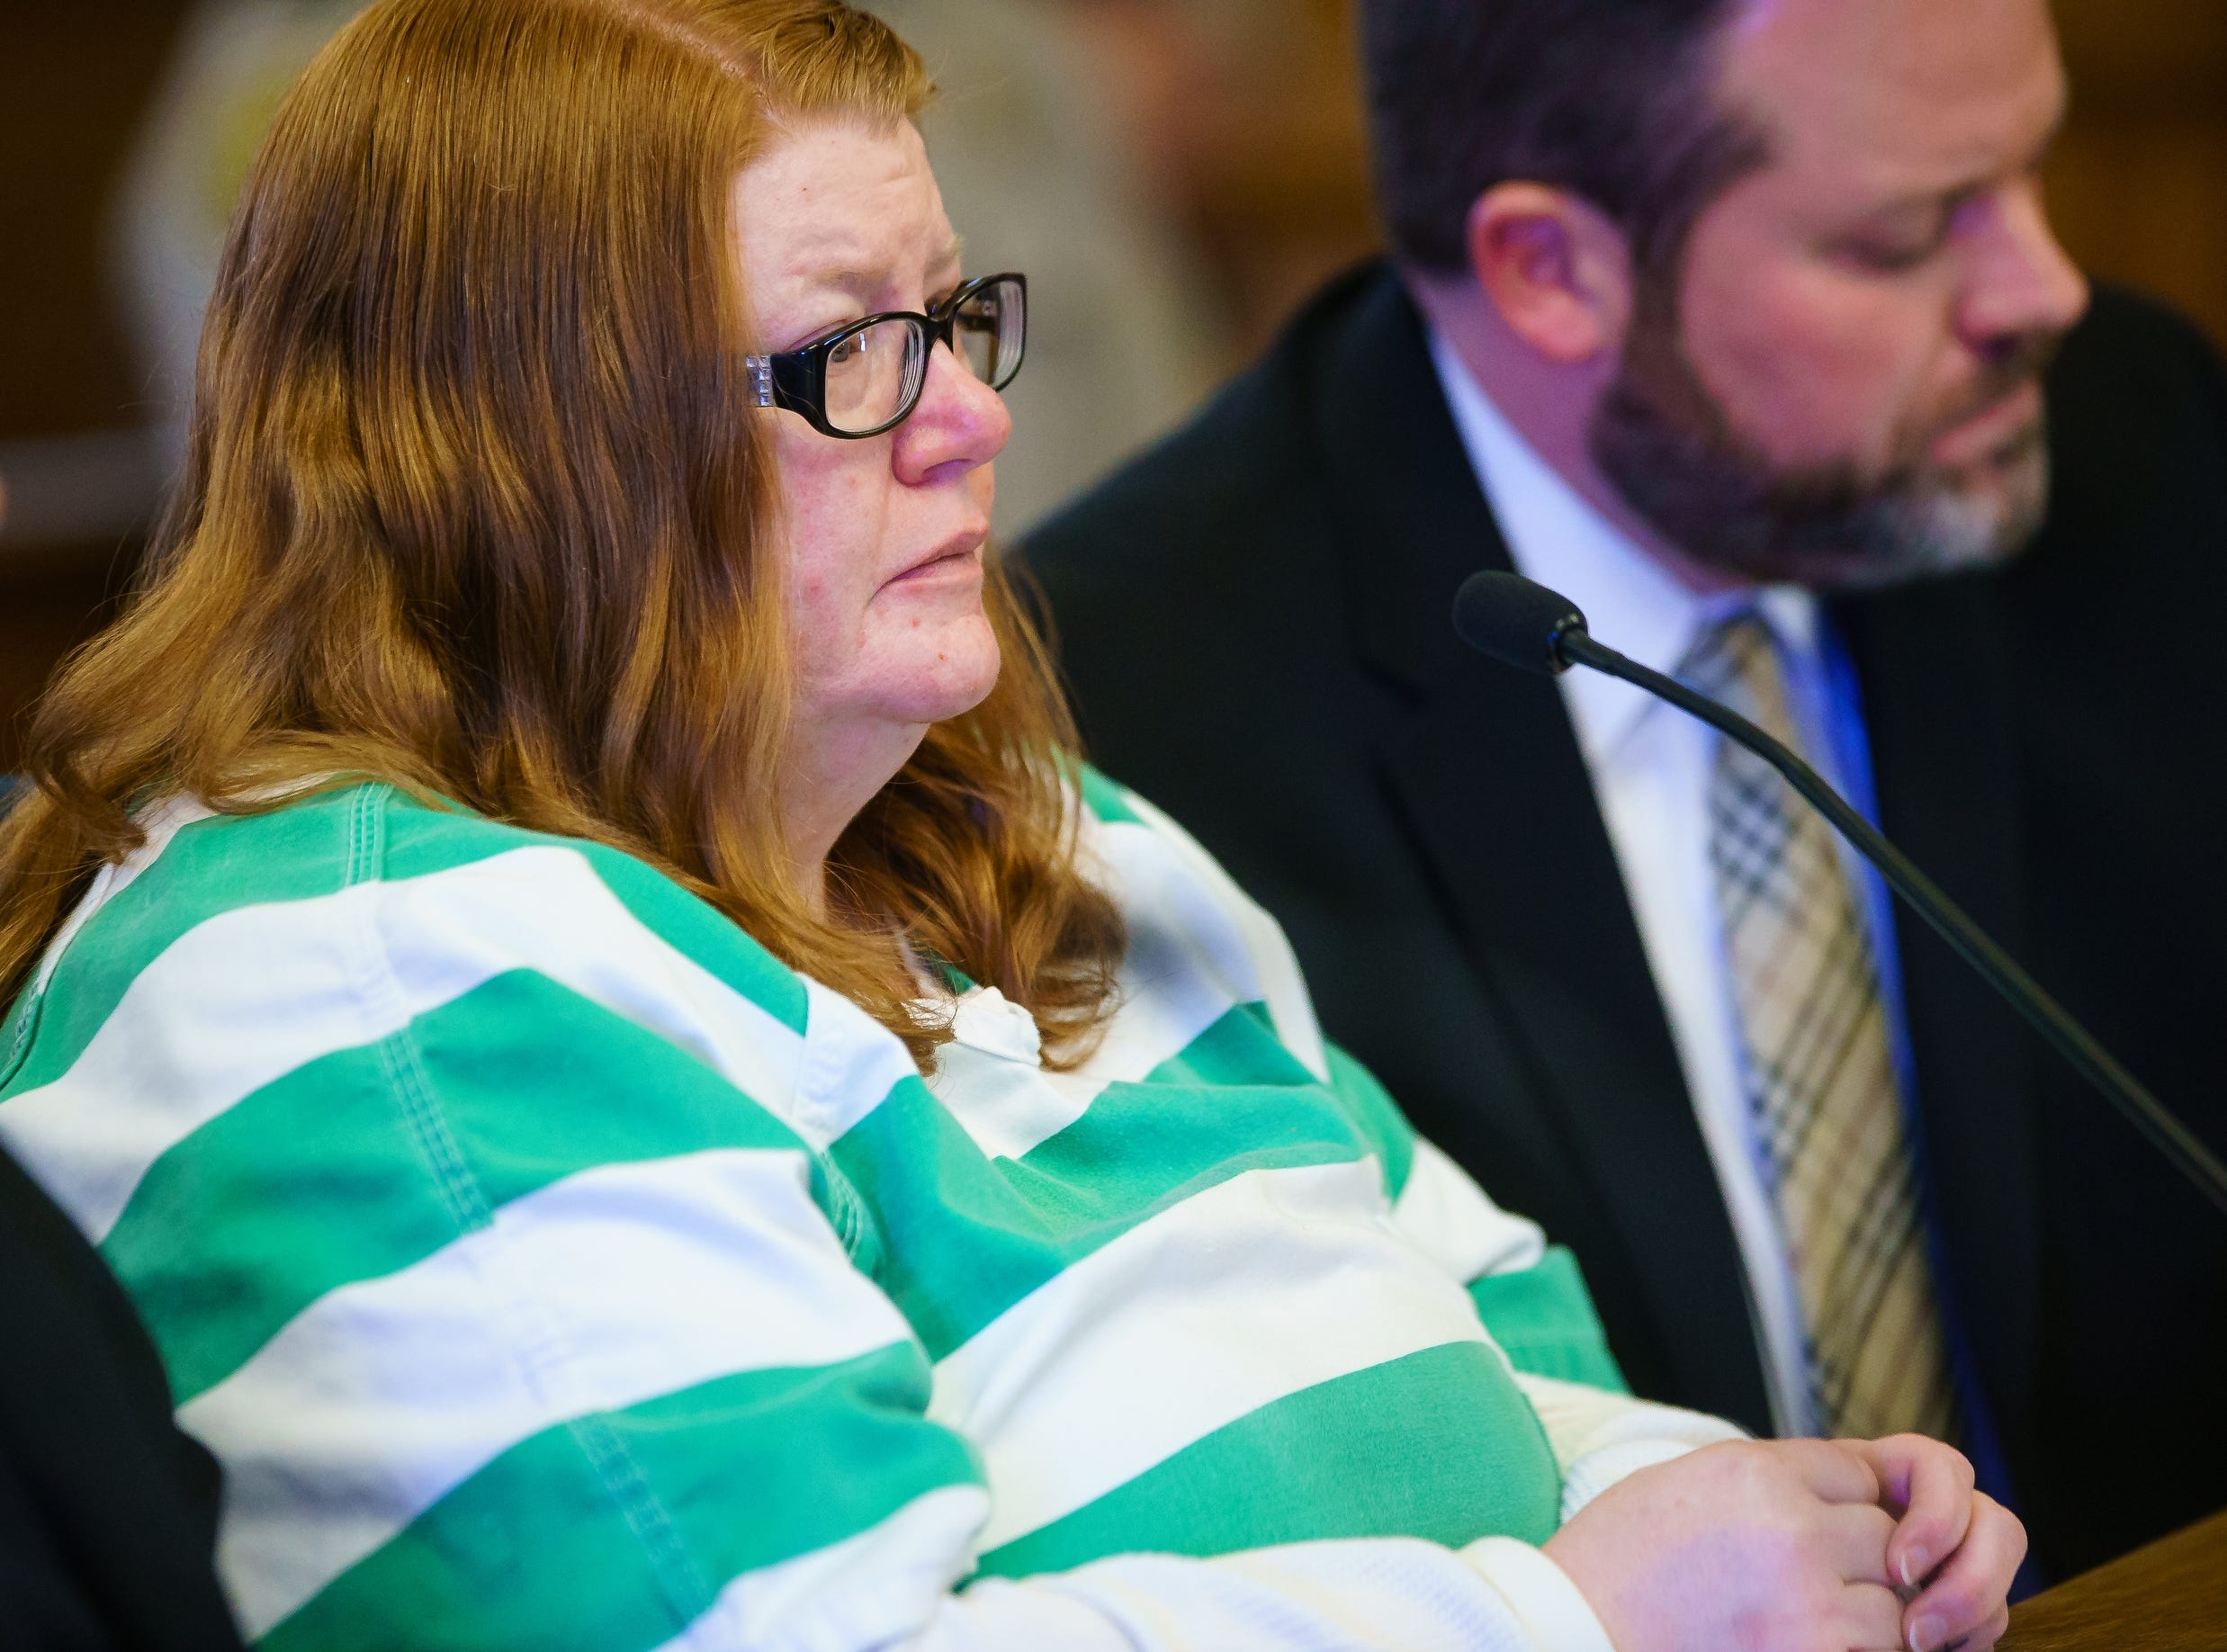 Misty Ray pleads guilty to three counts of kidnapping during a hearing at the Dallas County Courthouse on Wednesday, Jan. 9, 2019, in Adel.